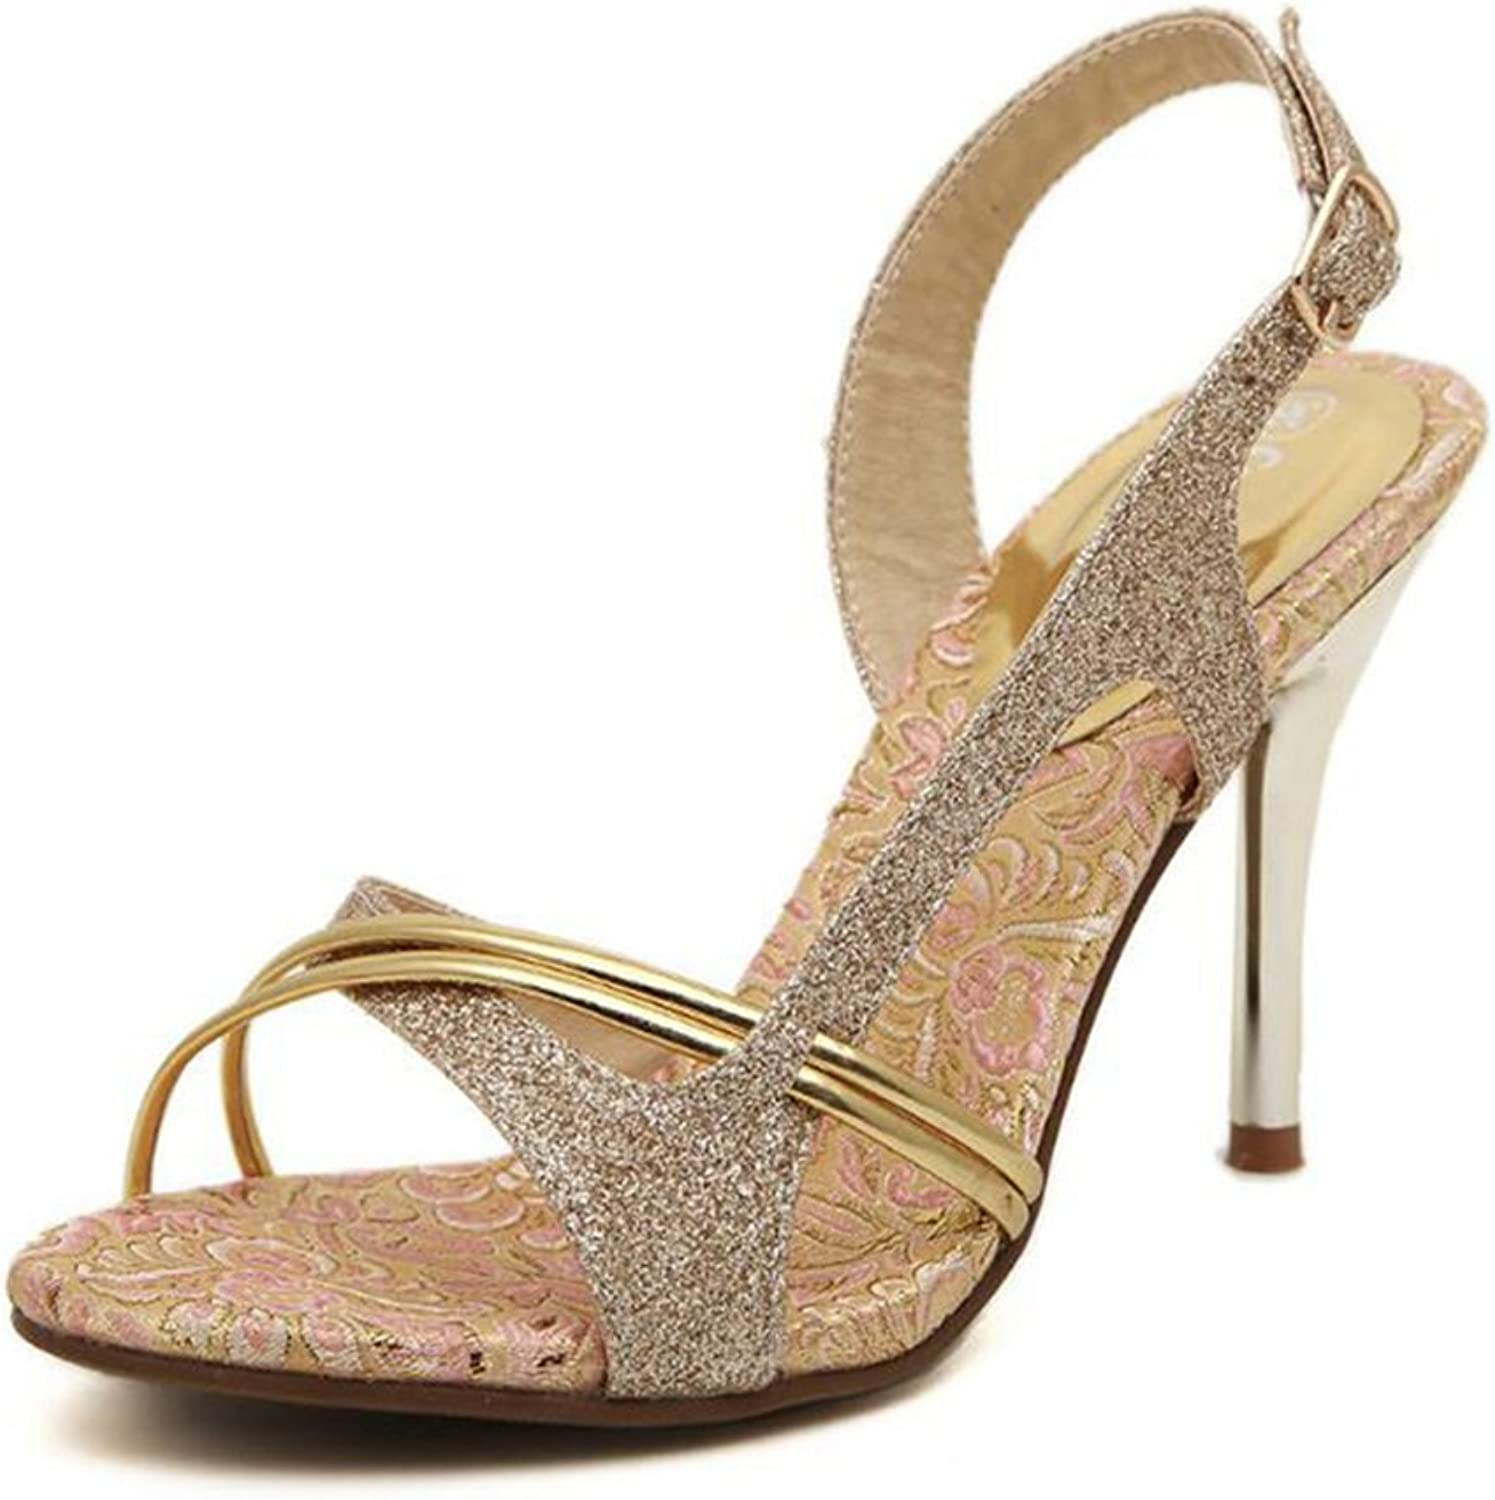 Womens Sandals Summer High Heeled shoes gold Stiletto Open Toe Buckle Sandal